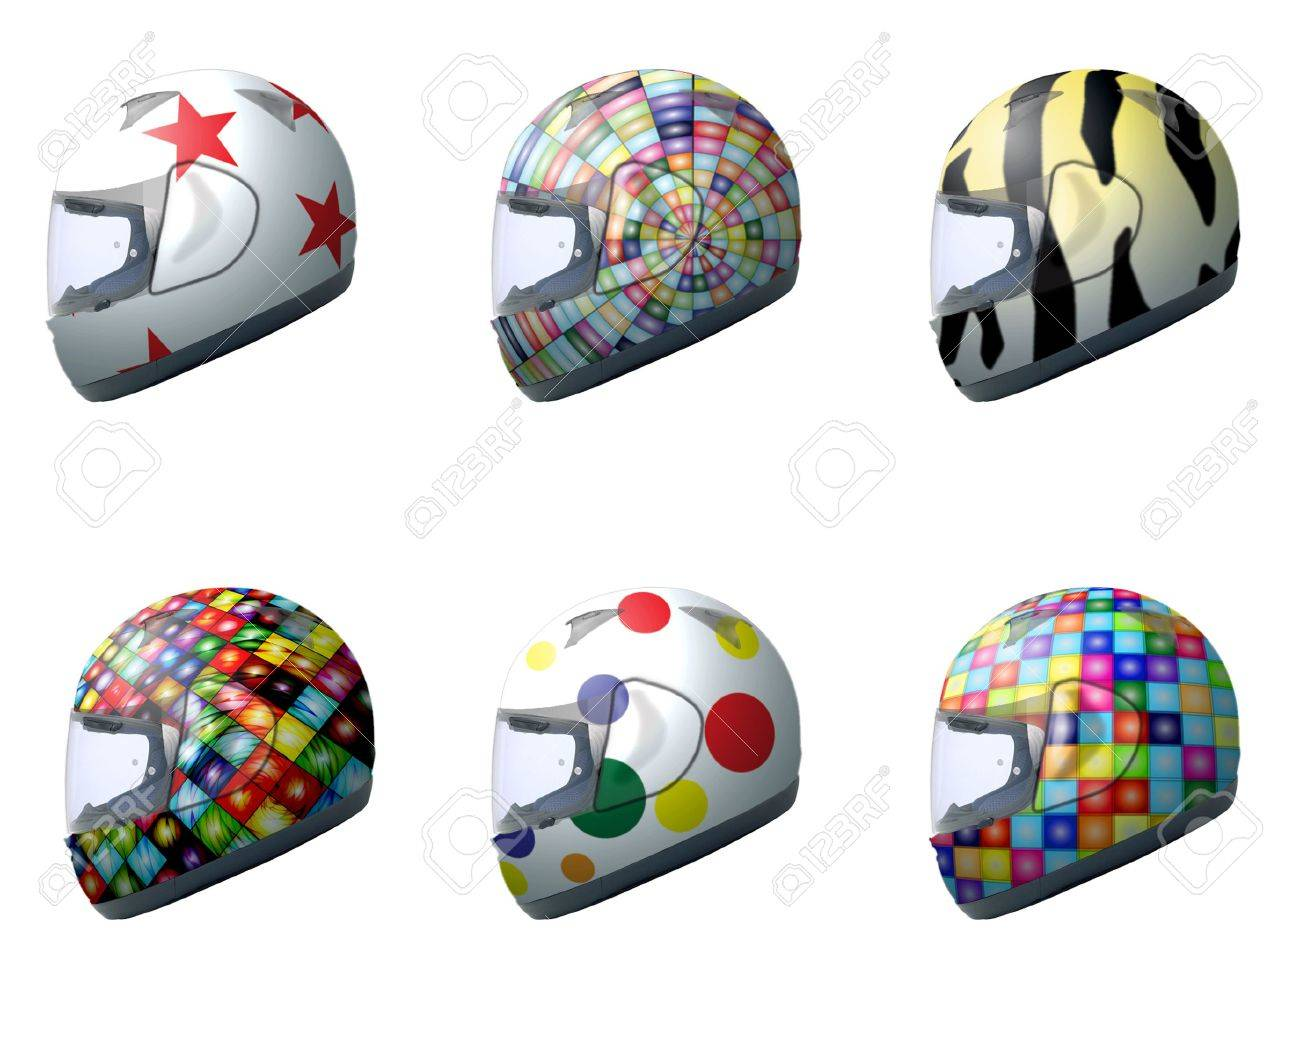 Motorcycle helmets with different designs 3 Stock Photo - 3032304